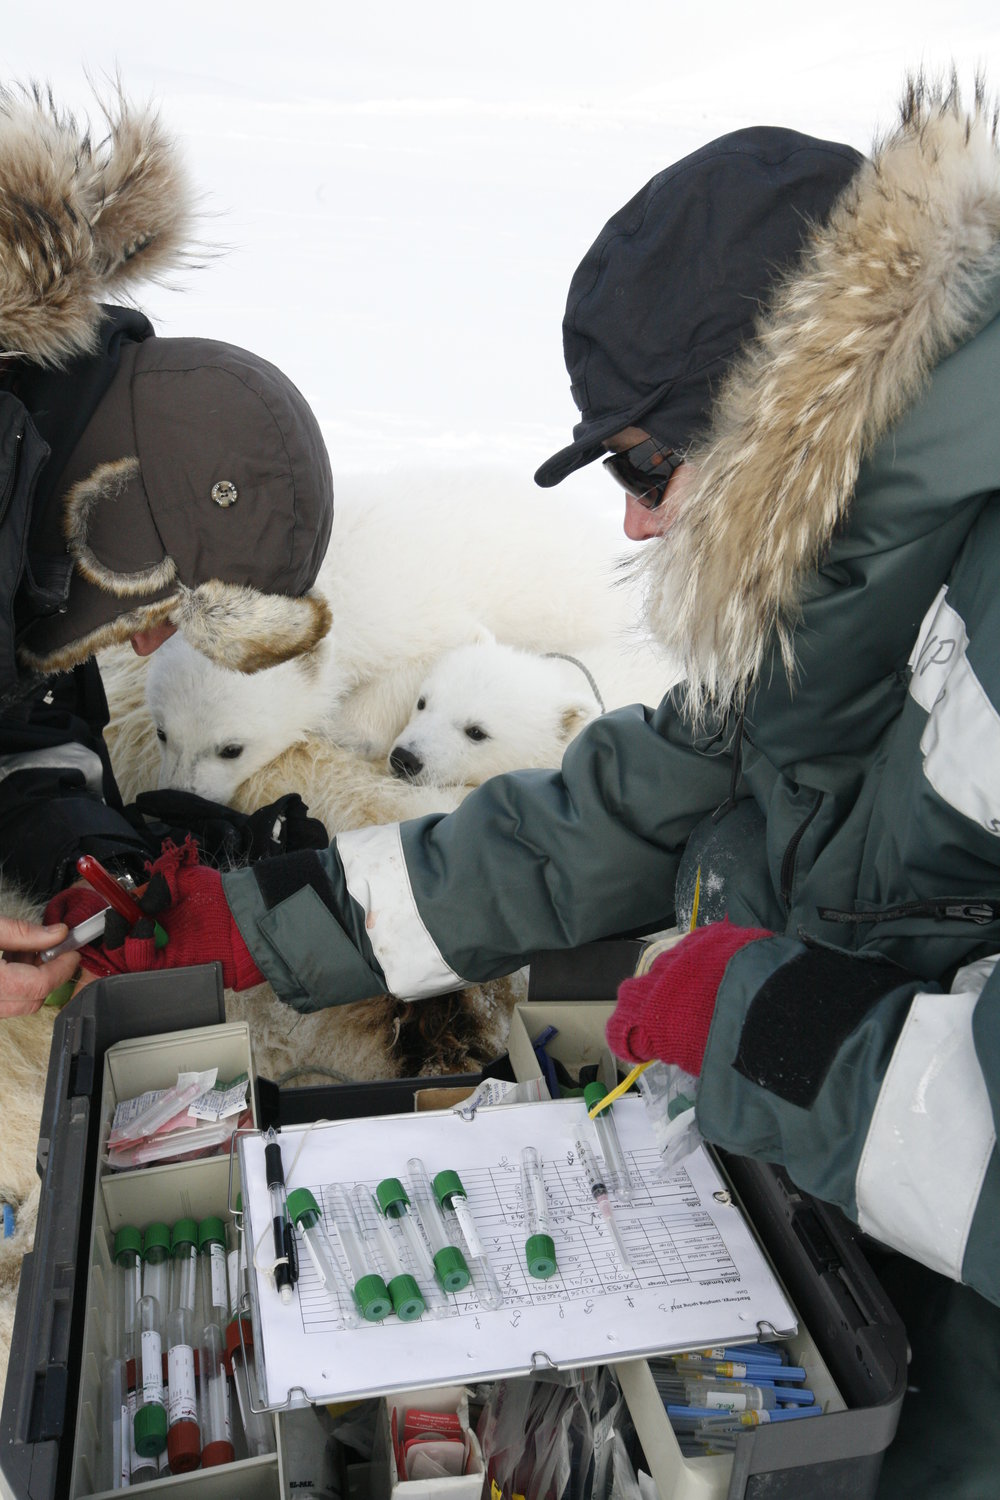 Fat and blood samples are used to study pollutants and their health effects in polar bears. Photos: Heli Routti and Magnus Andersen / Norwegian Polar Institute